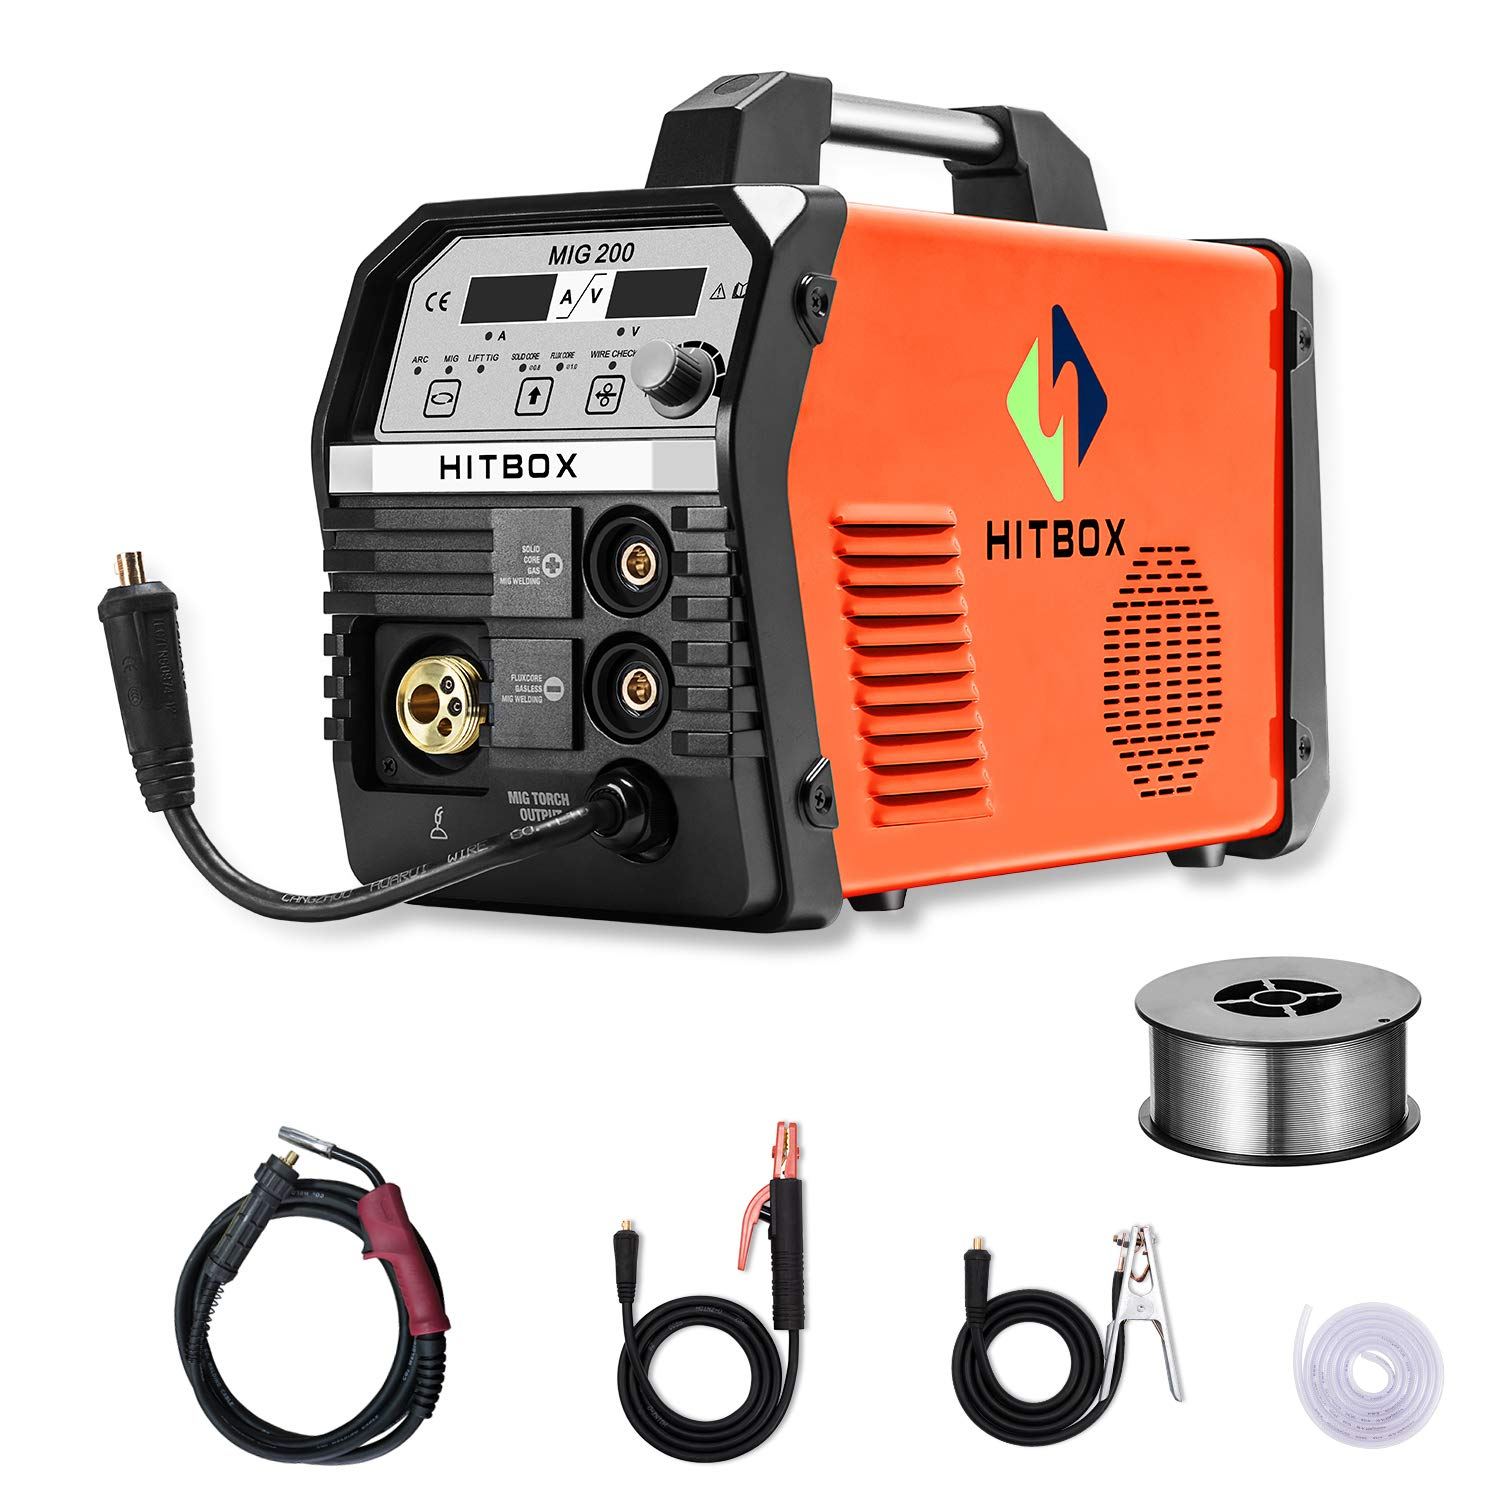 HITBOX Inverter IGBT Mig welder Review